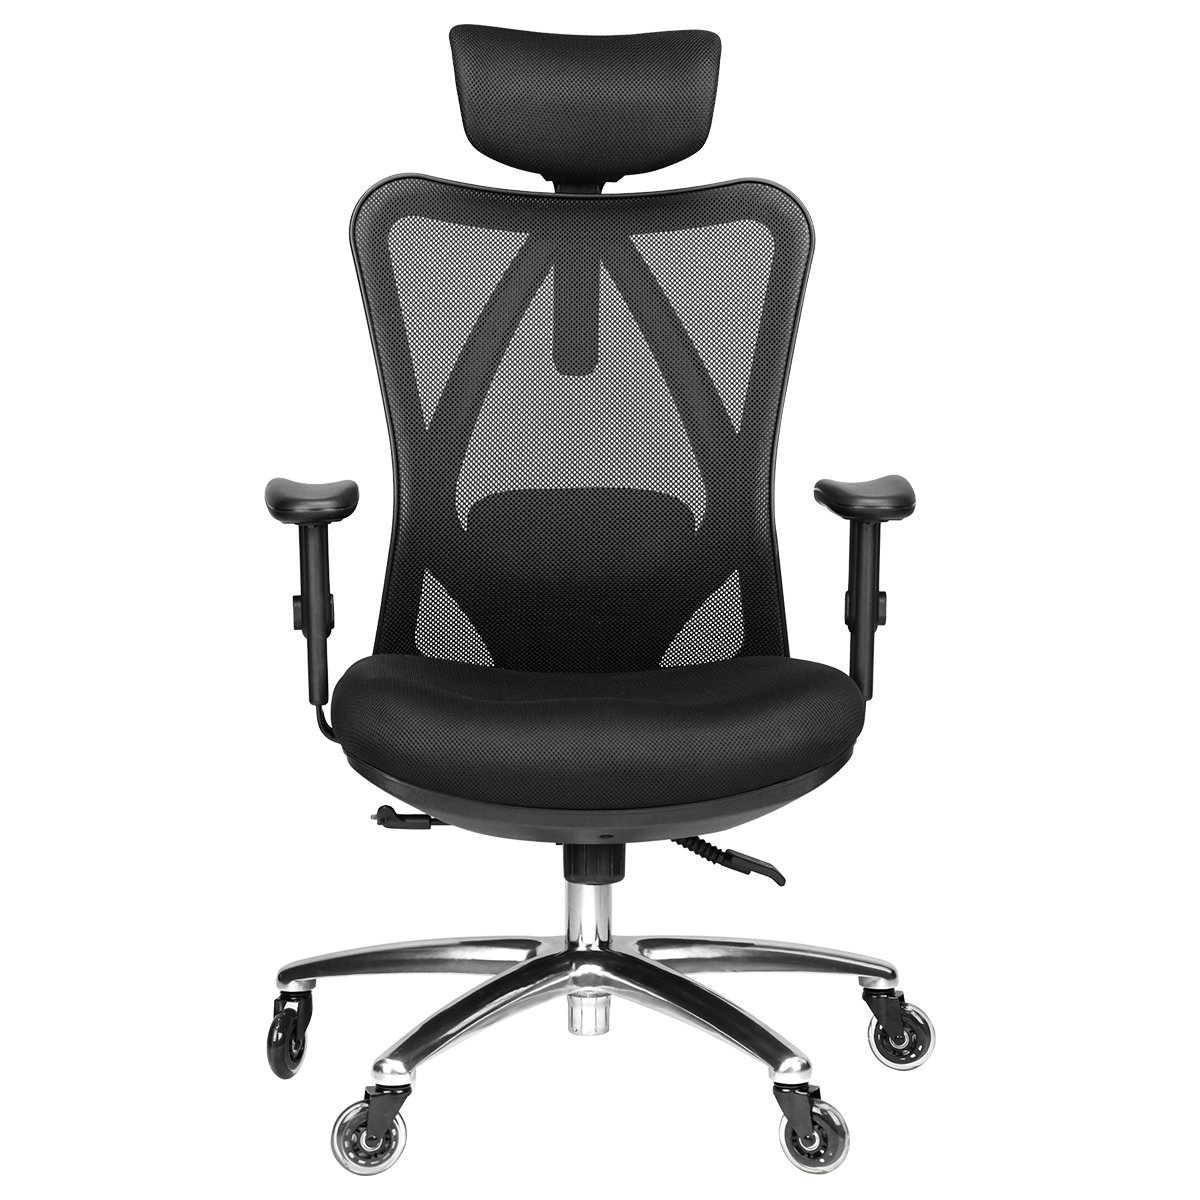 Best Desk Chair For Lower Back Pain Best Office Chair For Back Pain Reviews Best Office